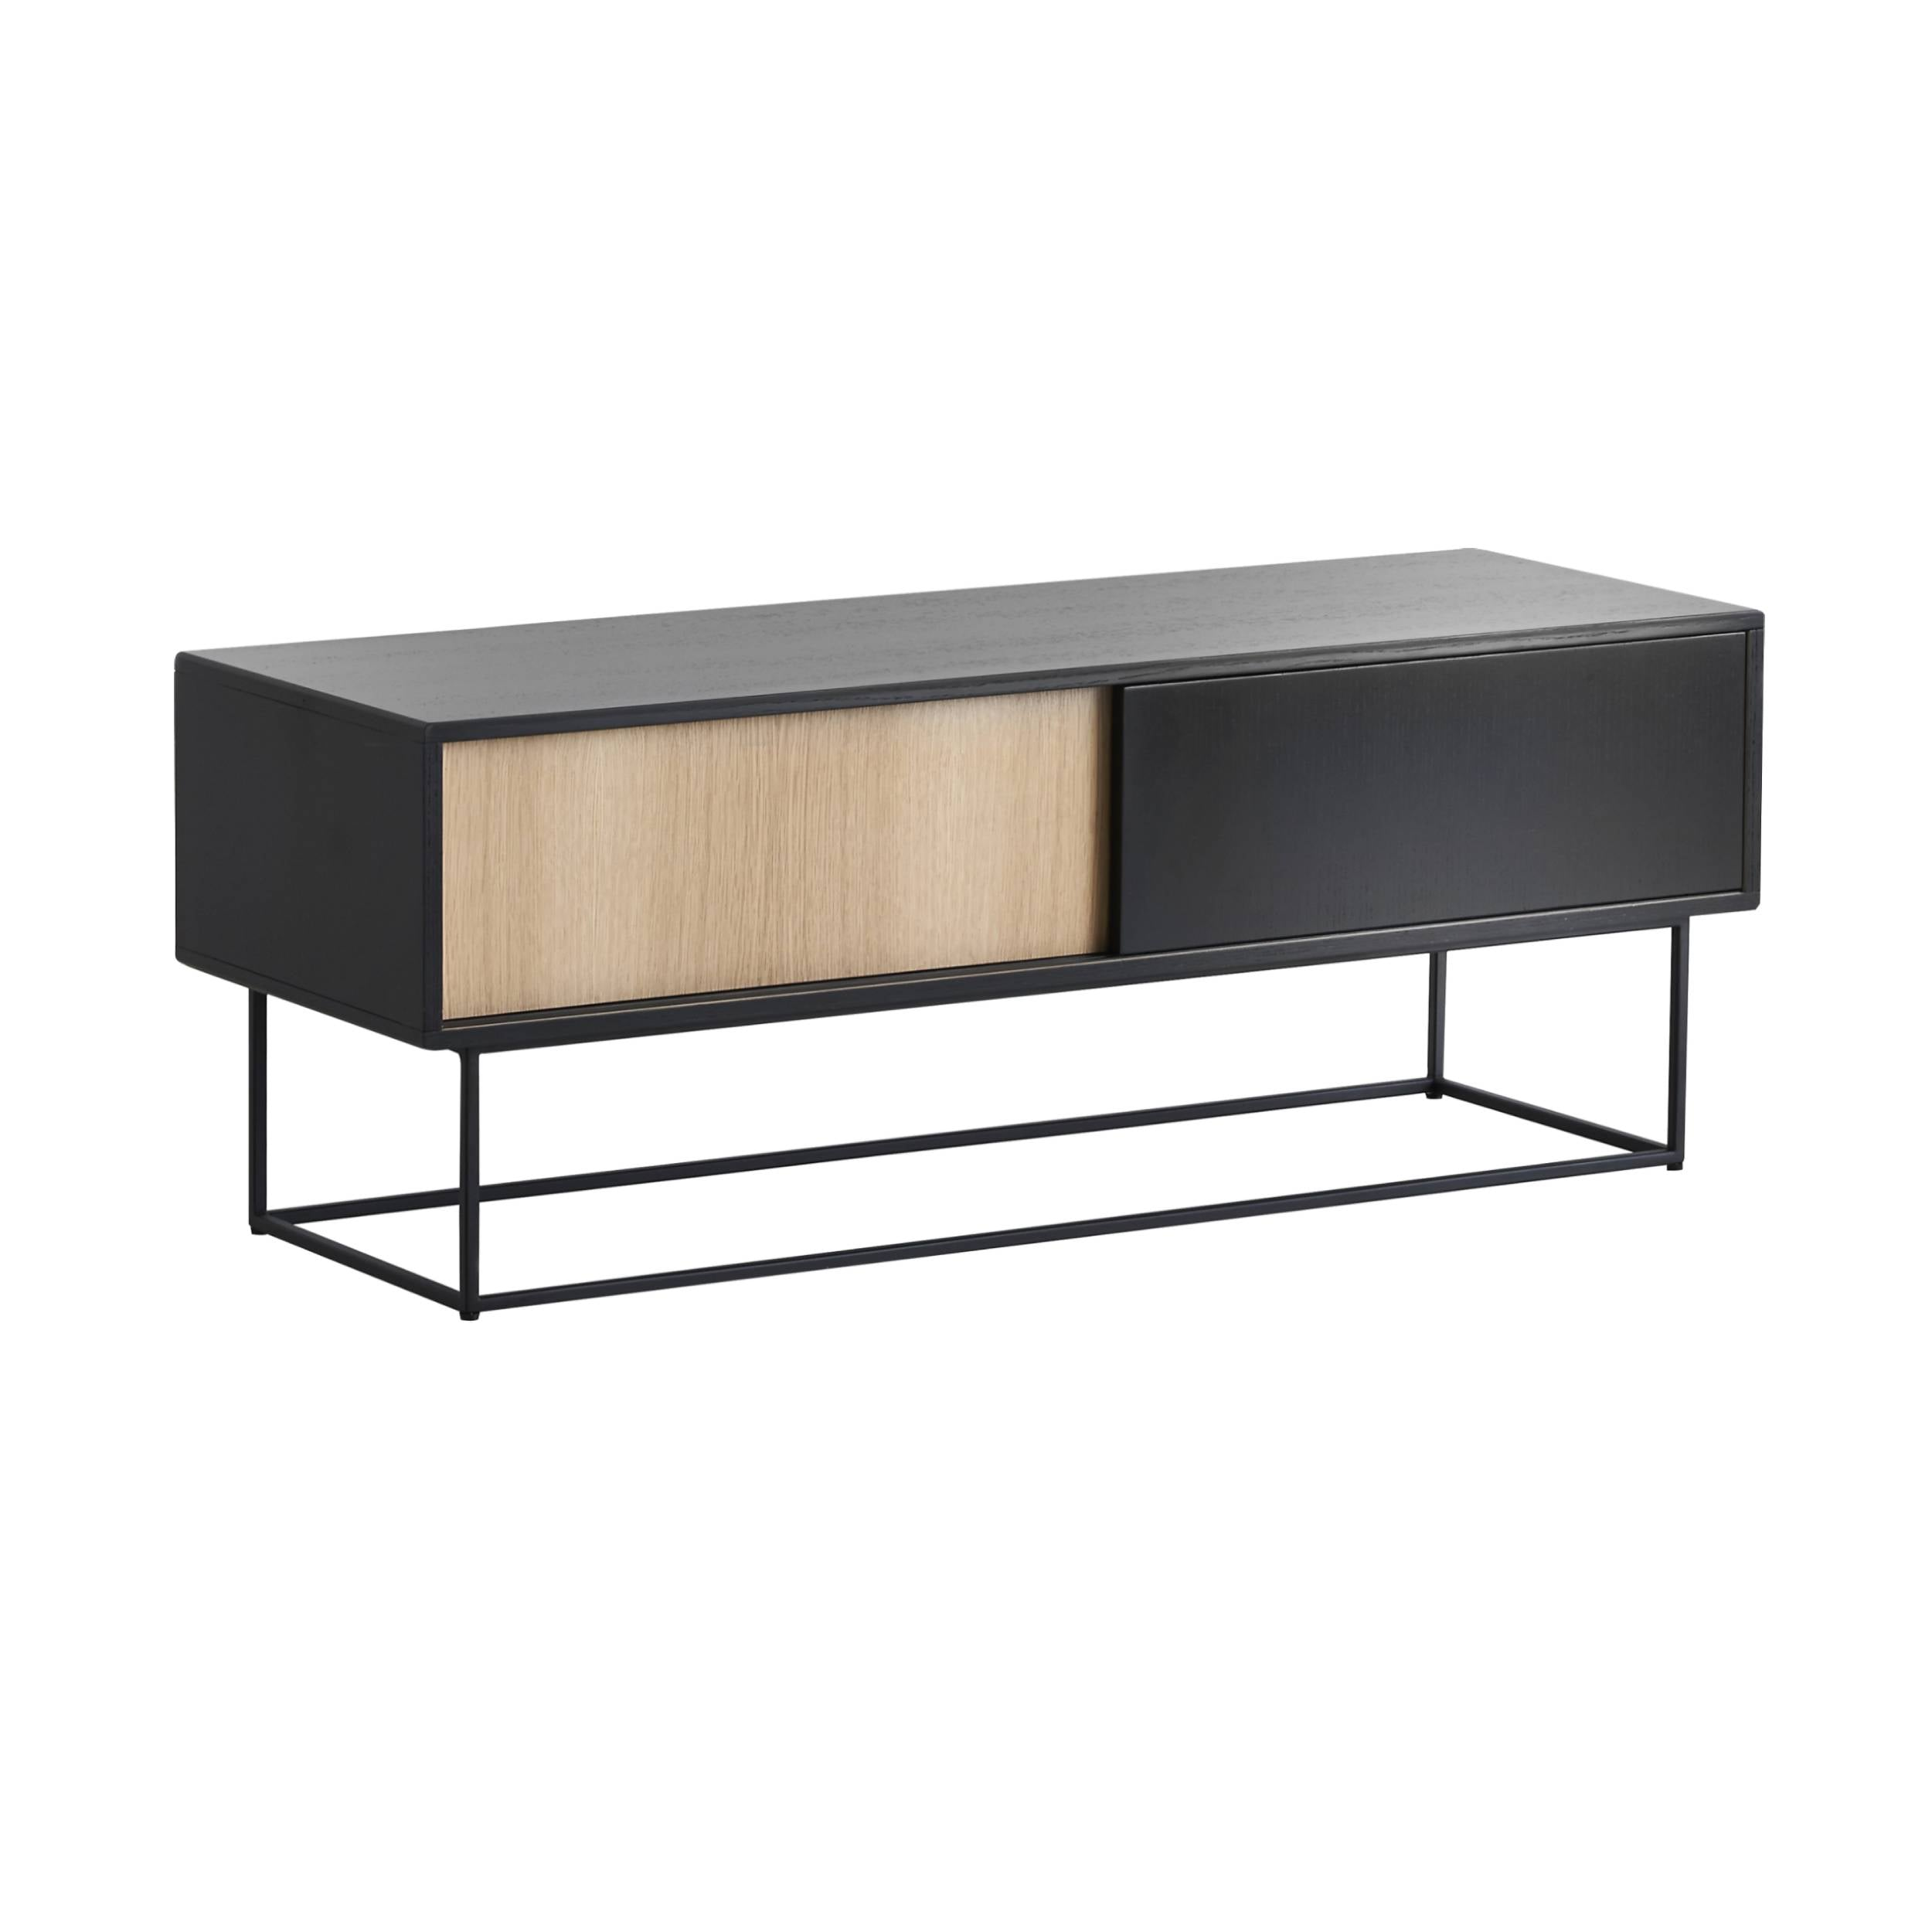 Virka Low Sideboard: Black + White Oiled Oak Drawers